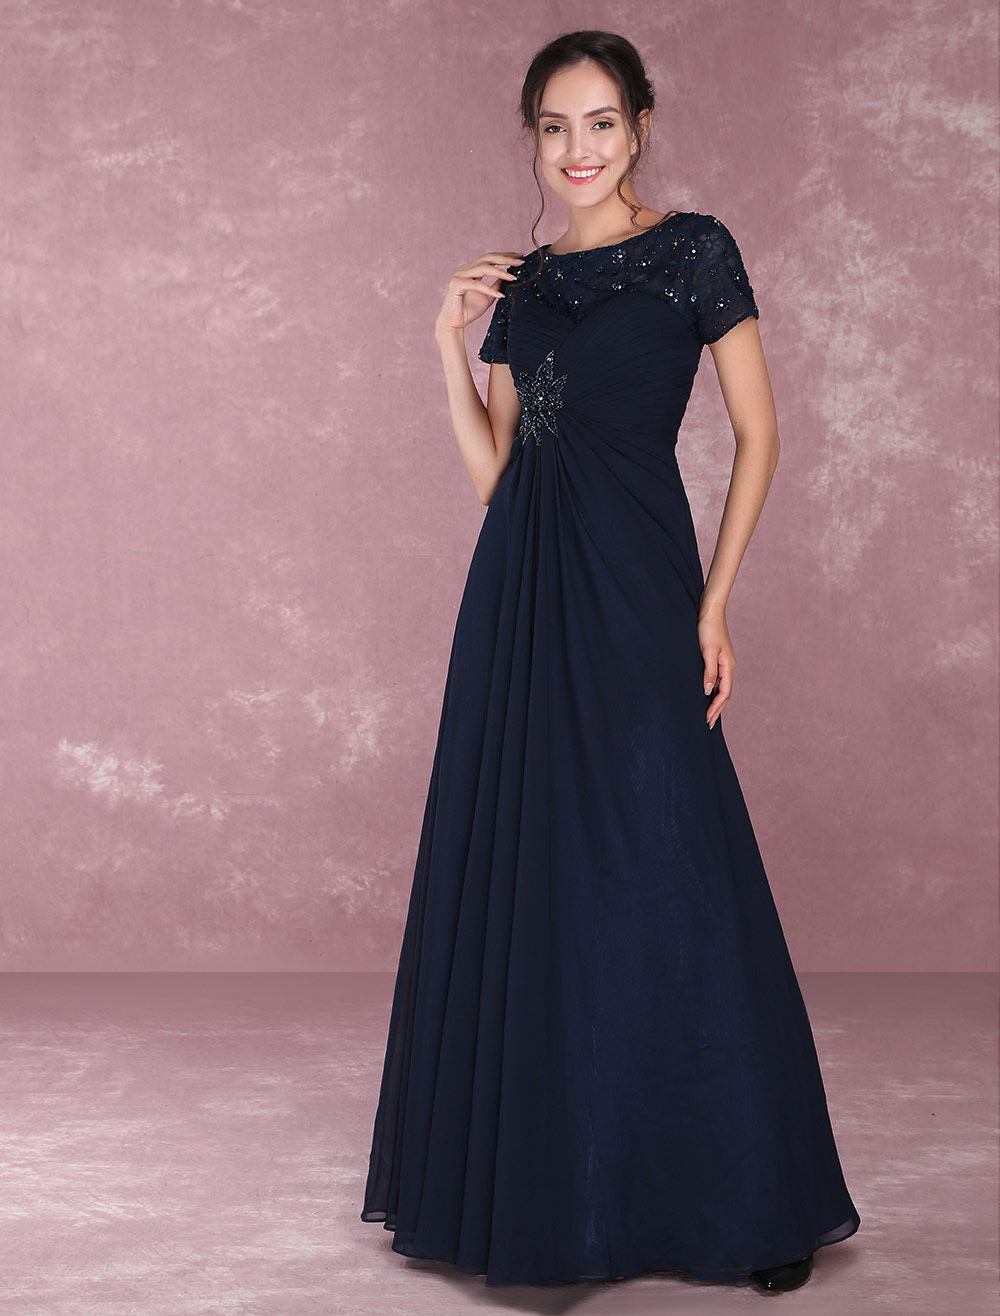 Buy Chiffon Mother Of The Bride Dresses Lace Applique Beading Evening Dresses Dark Navy Short Sleeve Pleated Floor Length Party Dress for $136.79 in Milanoo store